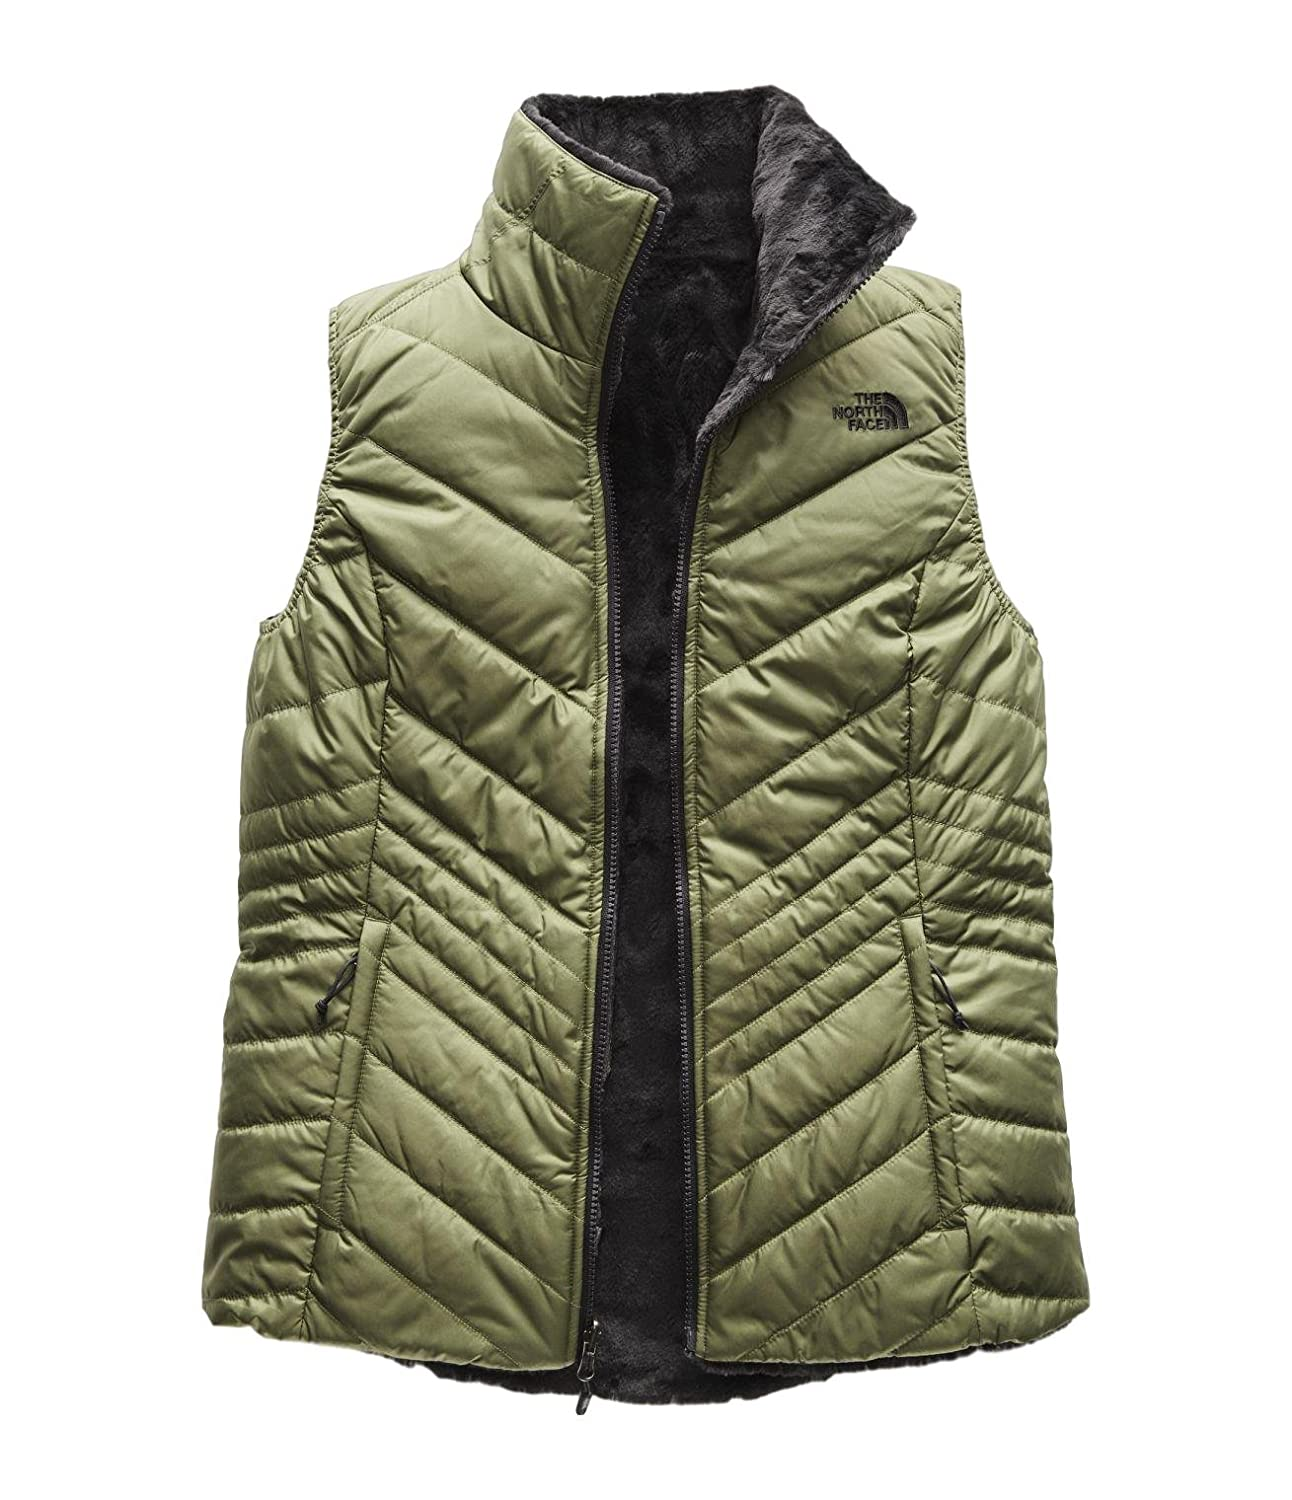 cd38b2df5 The North Face Women's Mossbud Insulated Reversible Vest